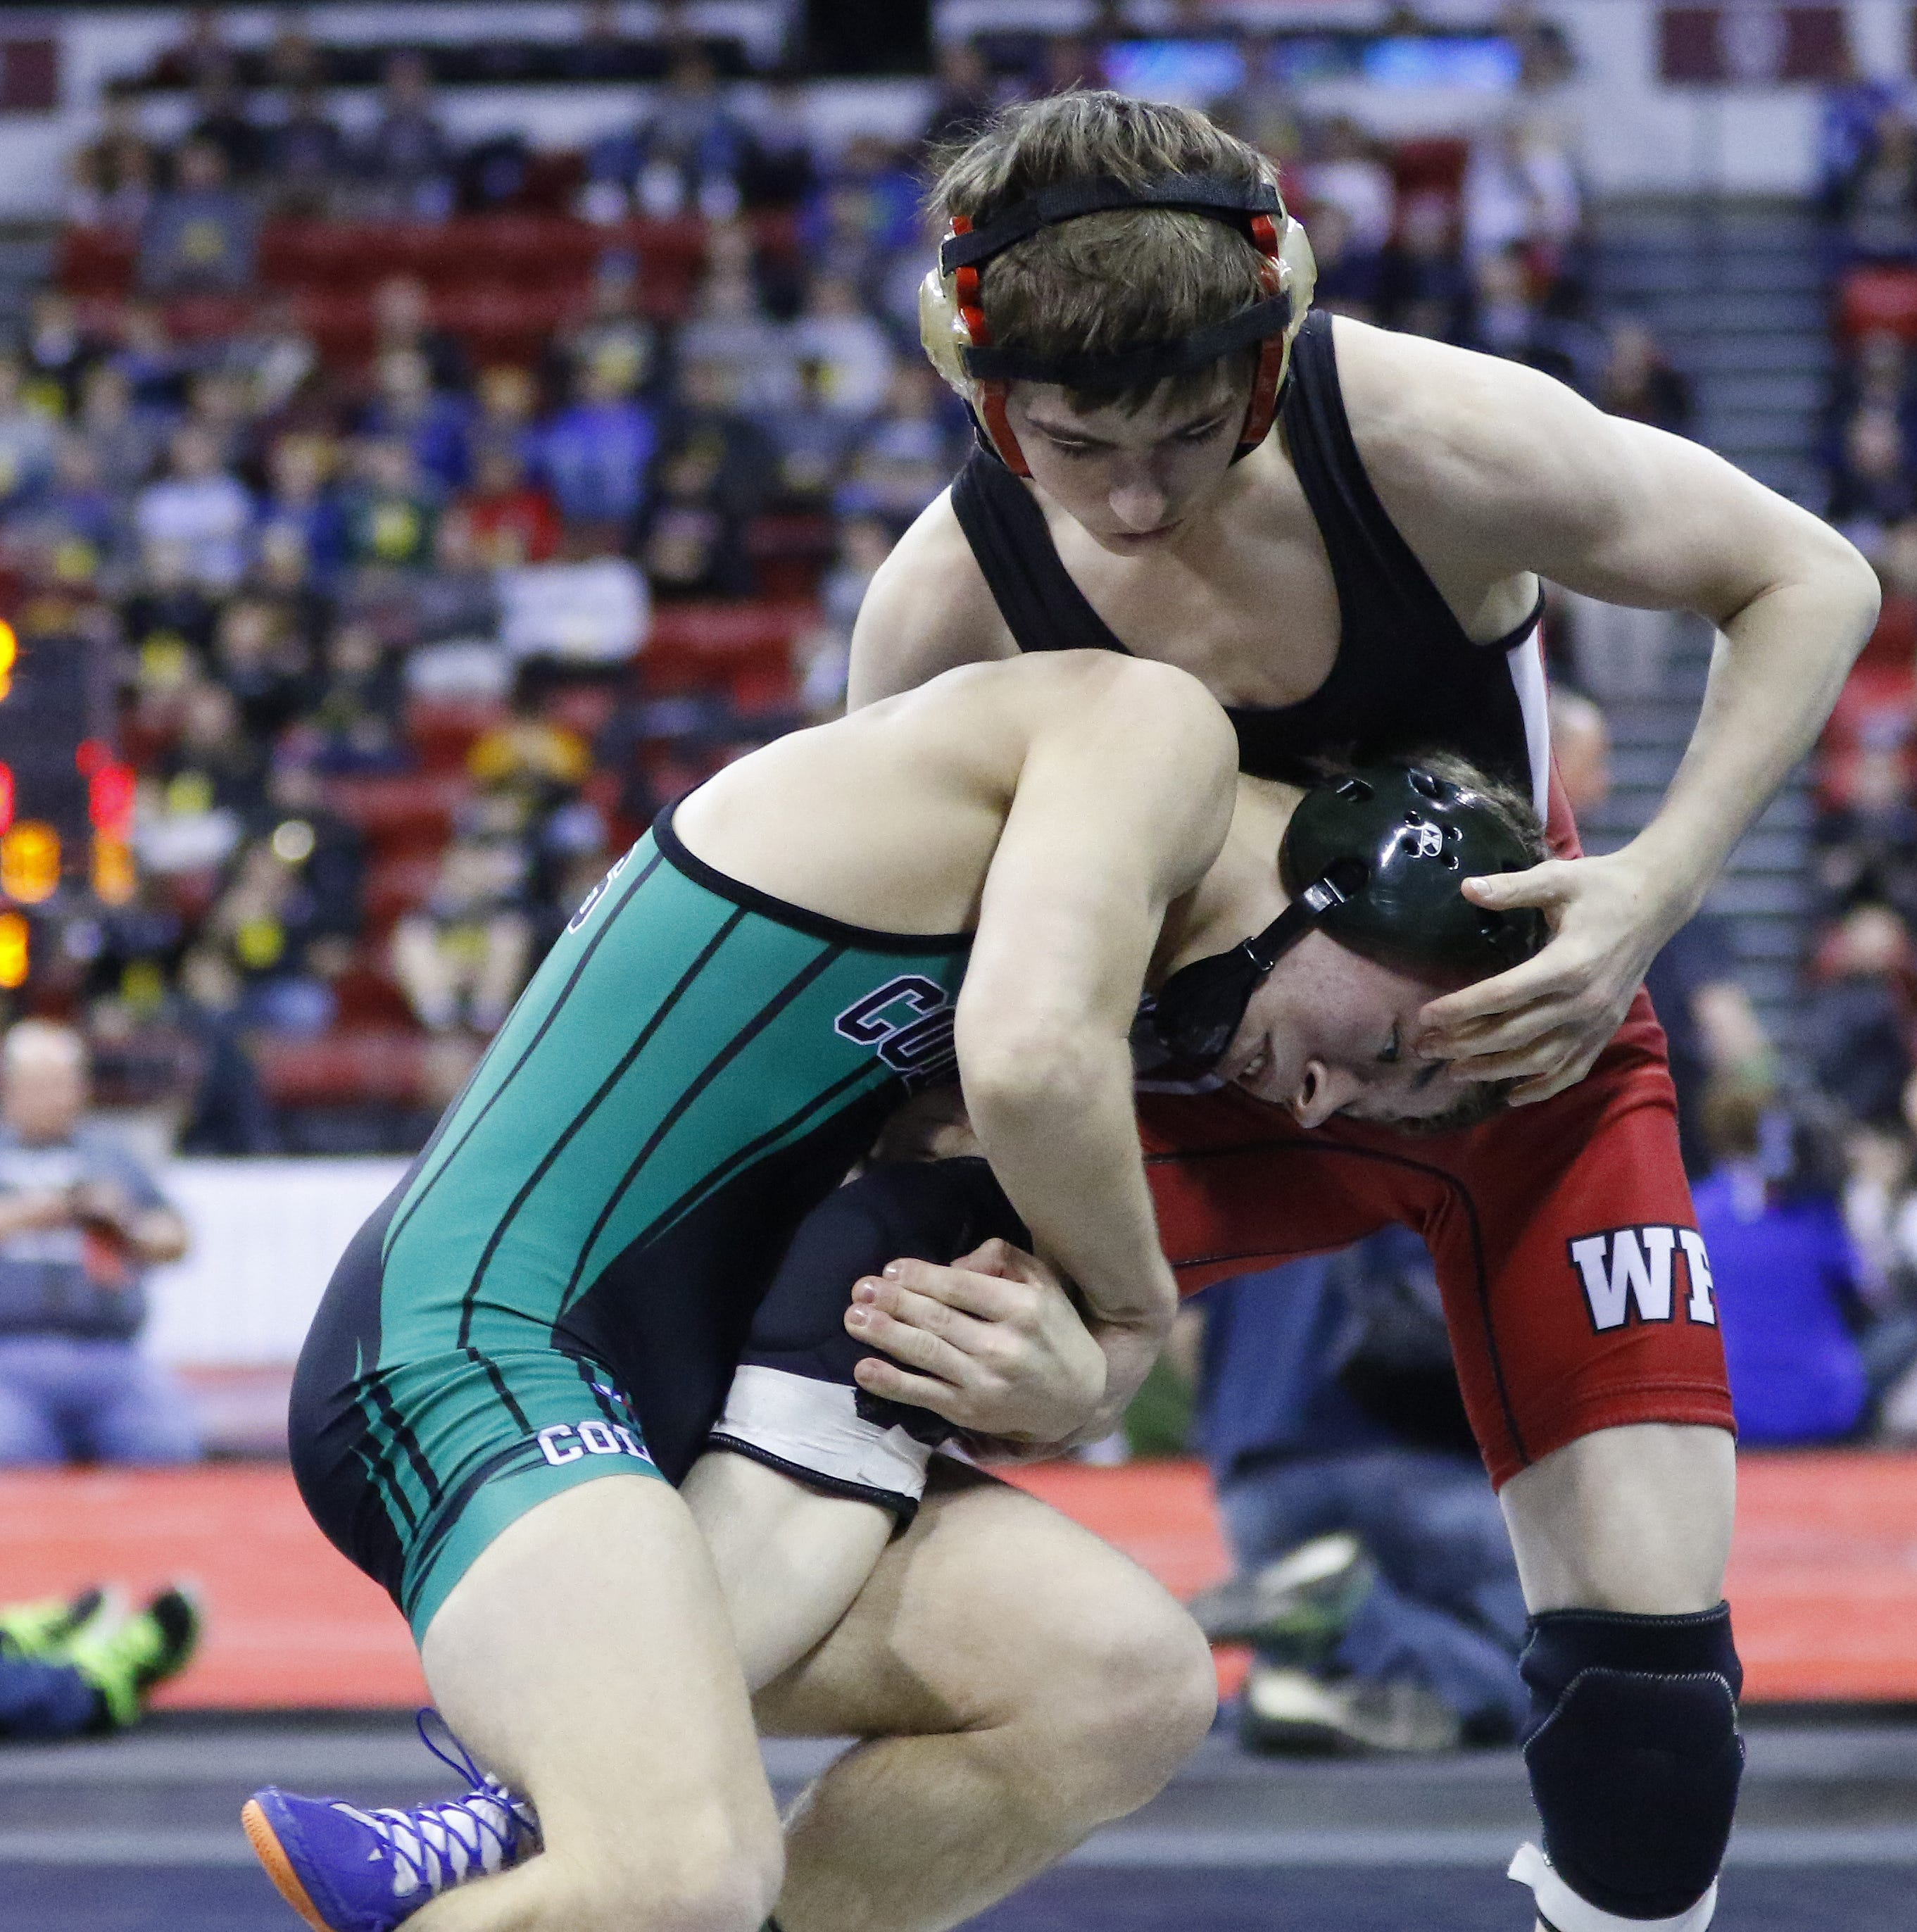 High school wrestling: Eight G10 individuals keep top spots for fifth straight week